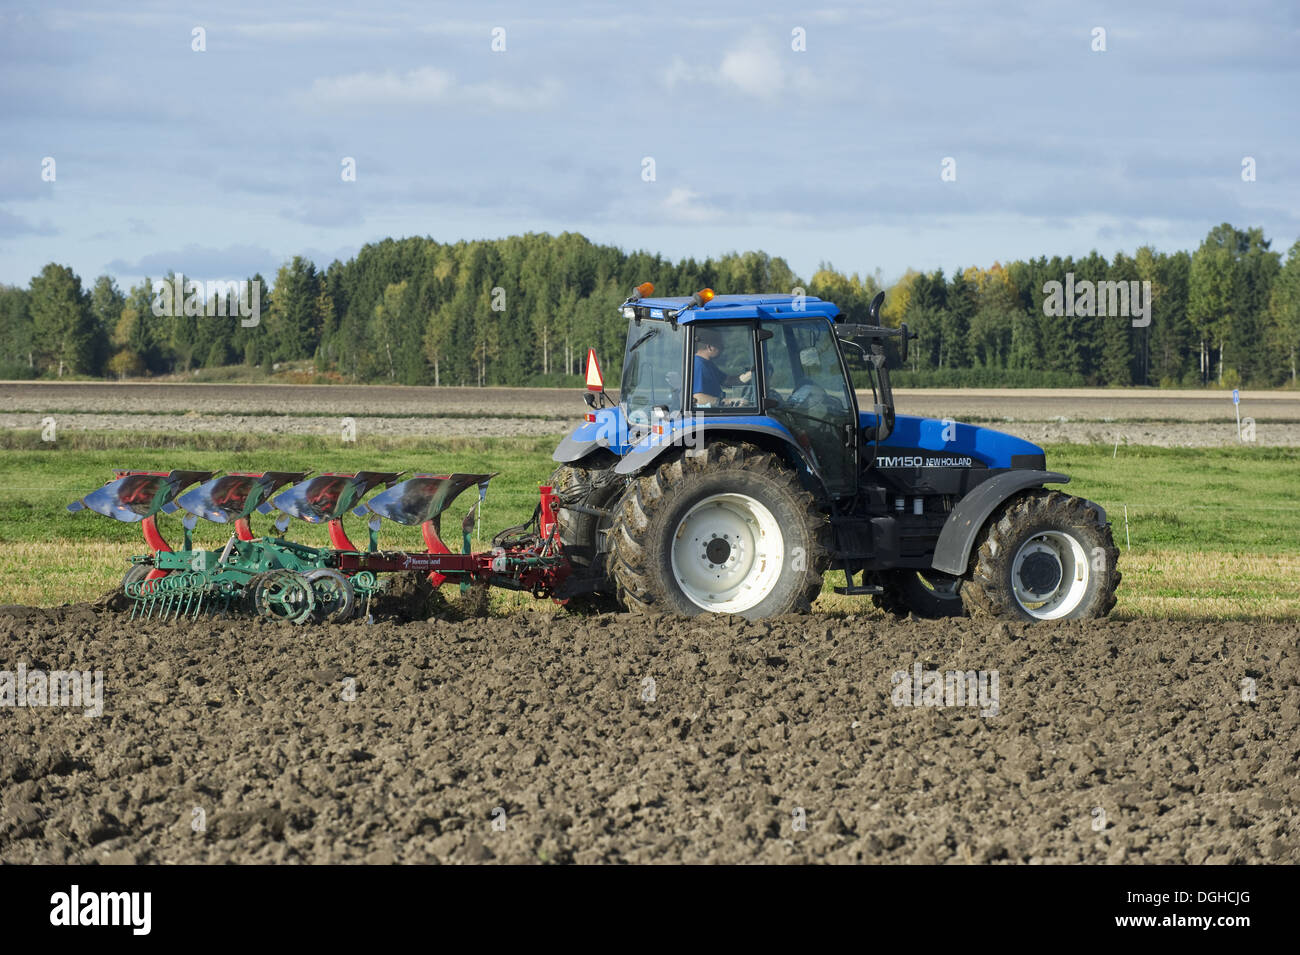 New Holland TM150 tractor with reversible plough and harrow Stock